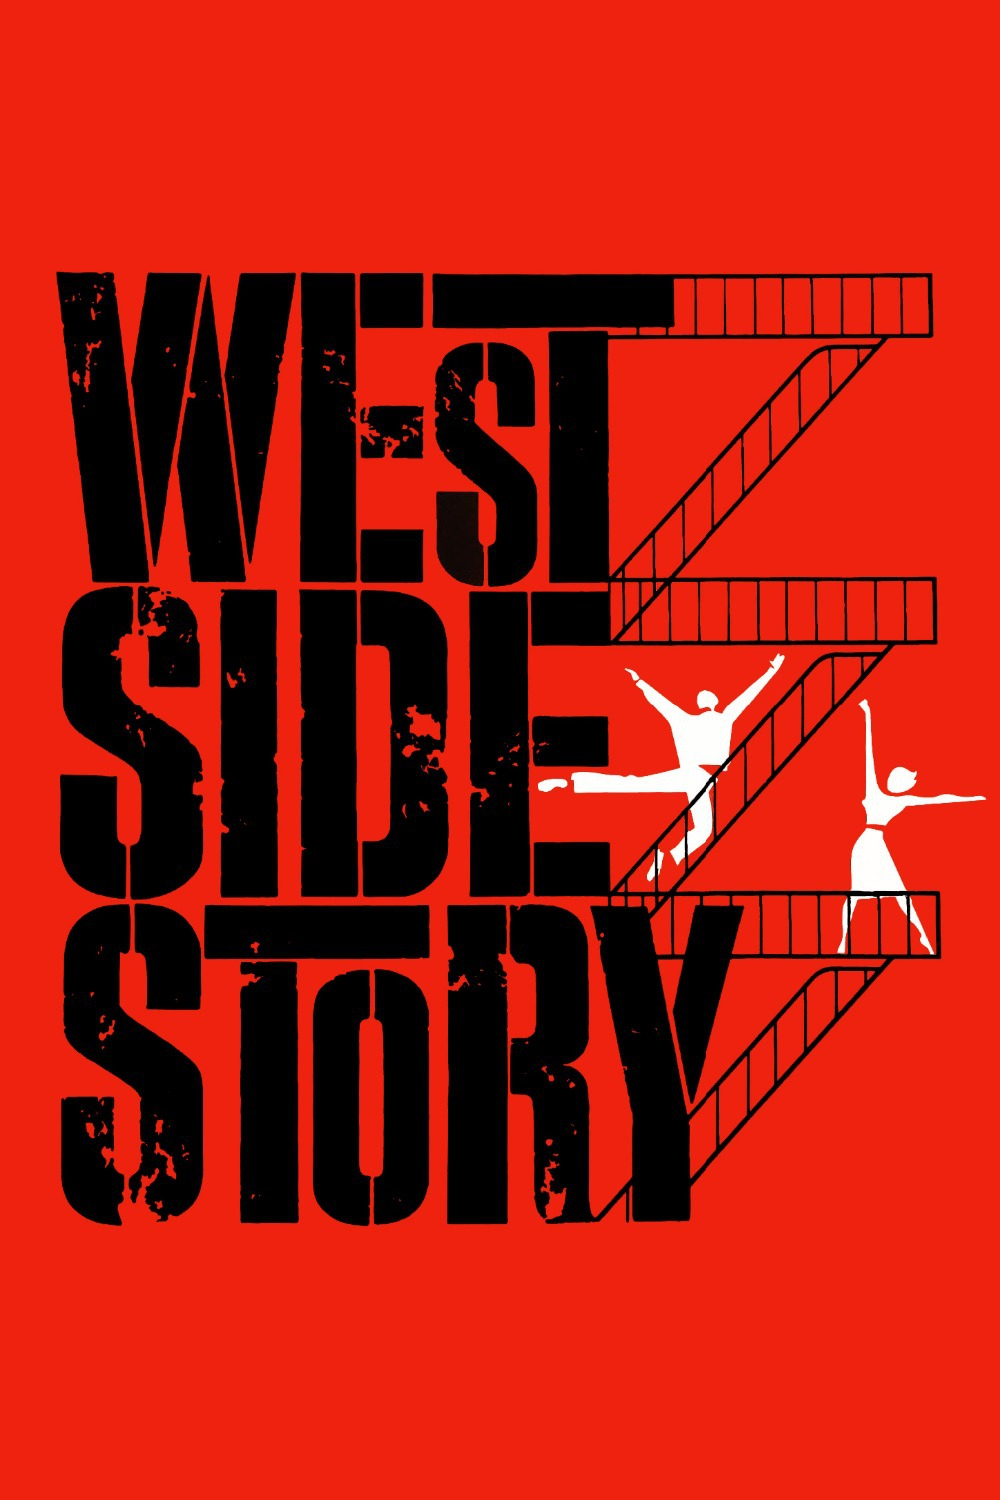 OEM-West-Side-Story-font-b-Broadway-b-font-Theater-Play-art-logo-home-office-wall.jpg